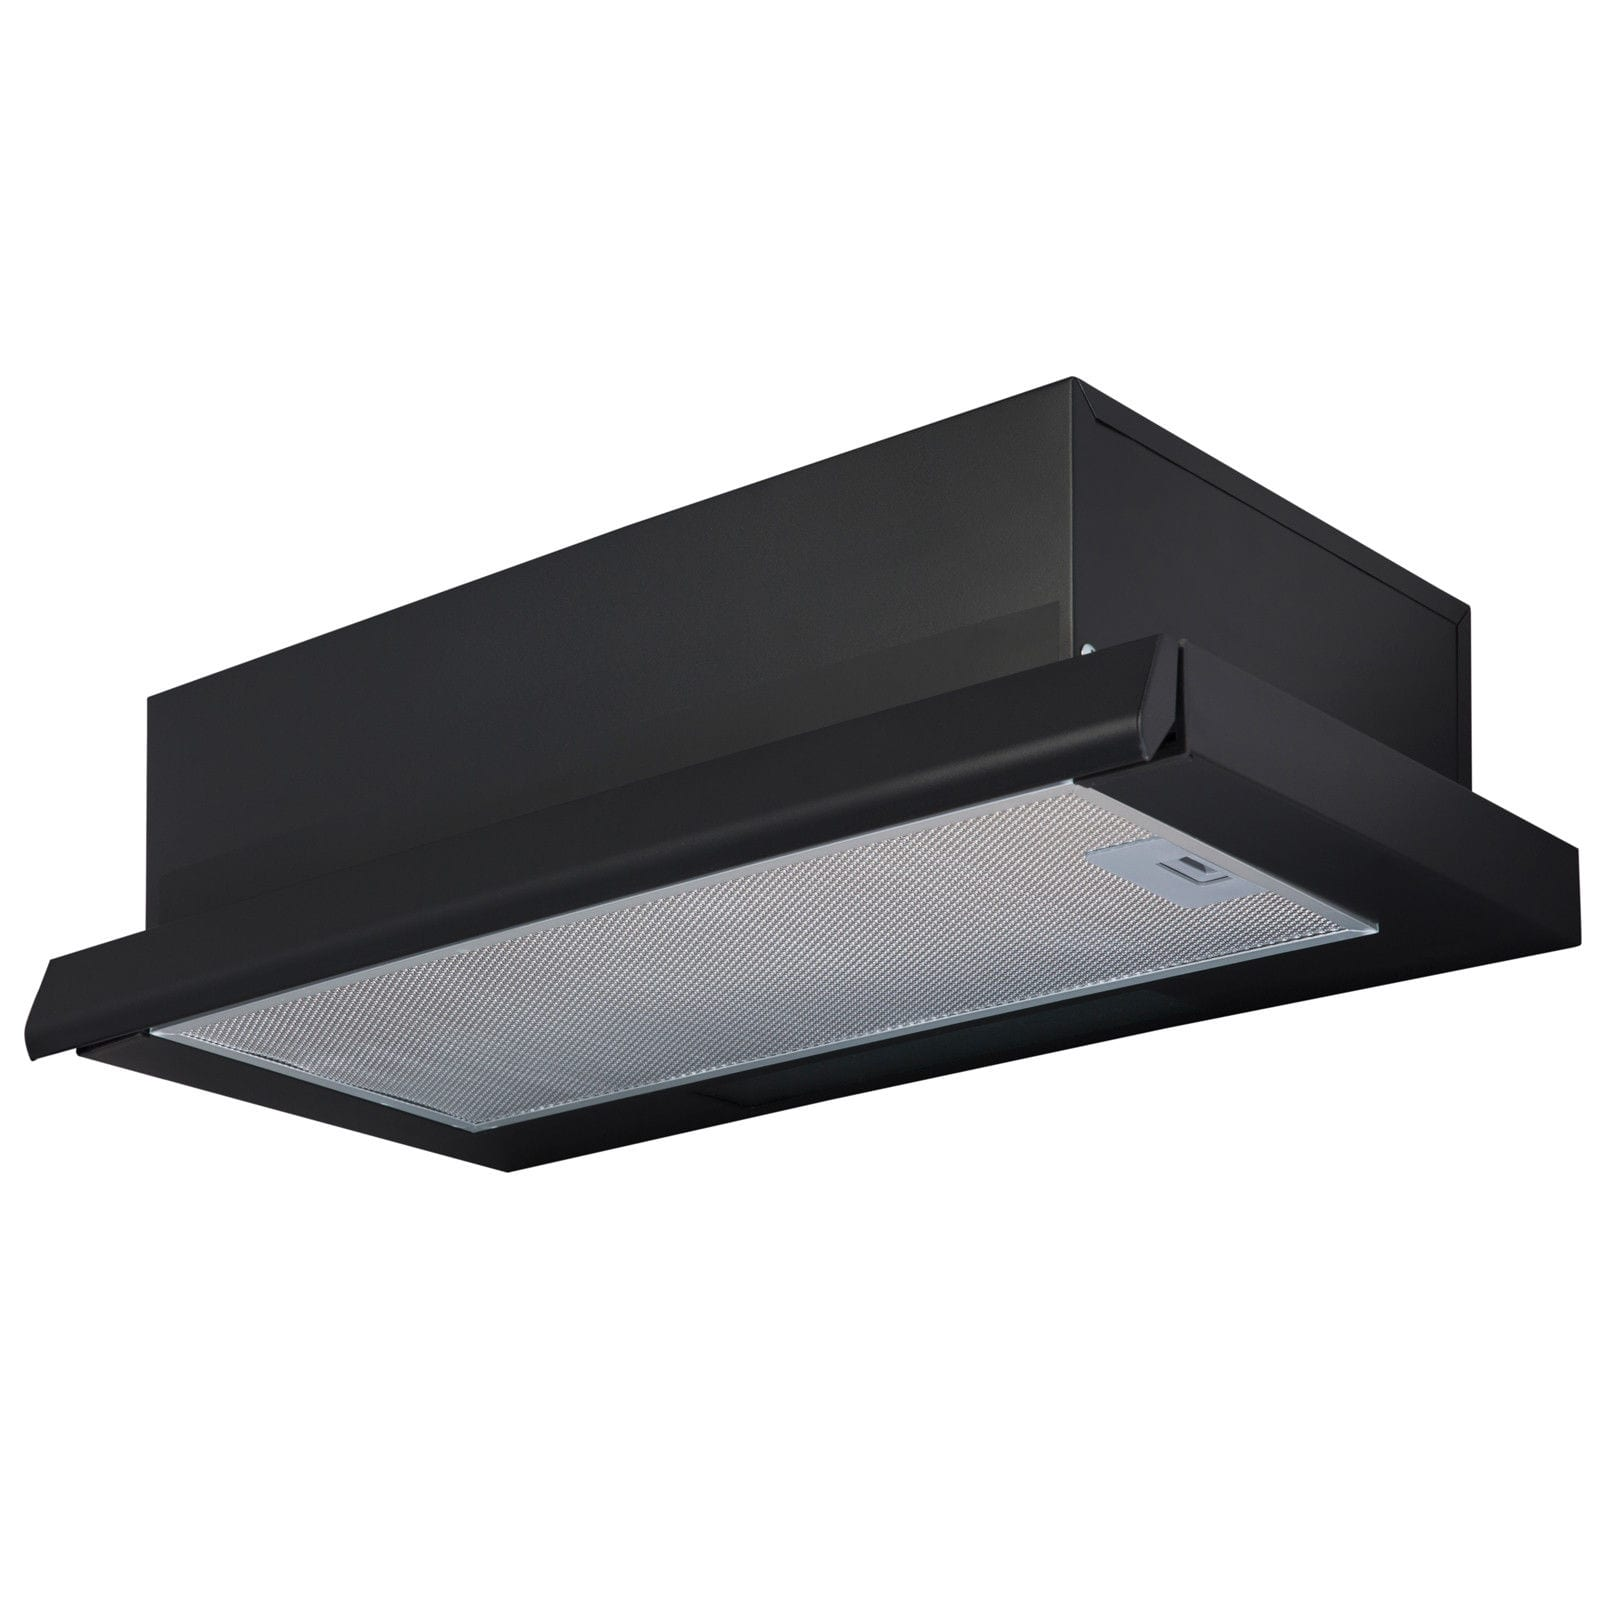 sia tsc60bl 60cm black telescopic integrated cooker hood kitchen rh shipitappliances com Ceiling in Kitchen Island Hood Ceiling Extractor Fan Bathroom